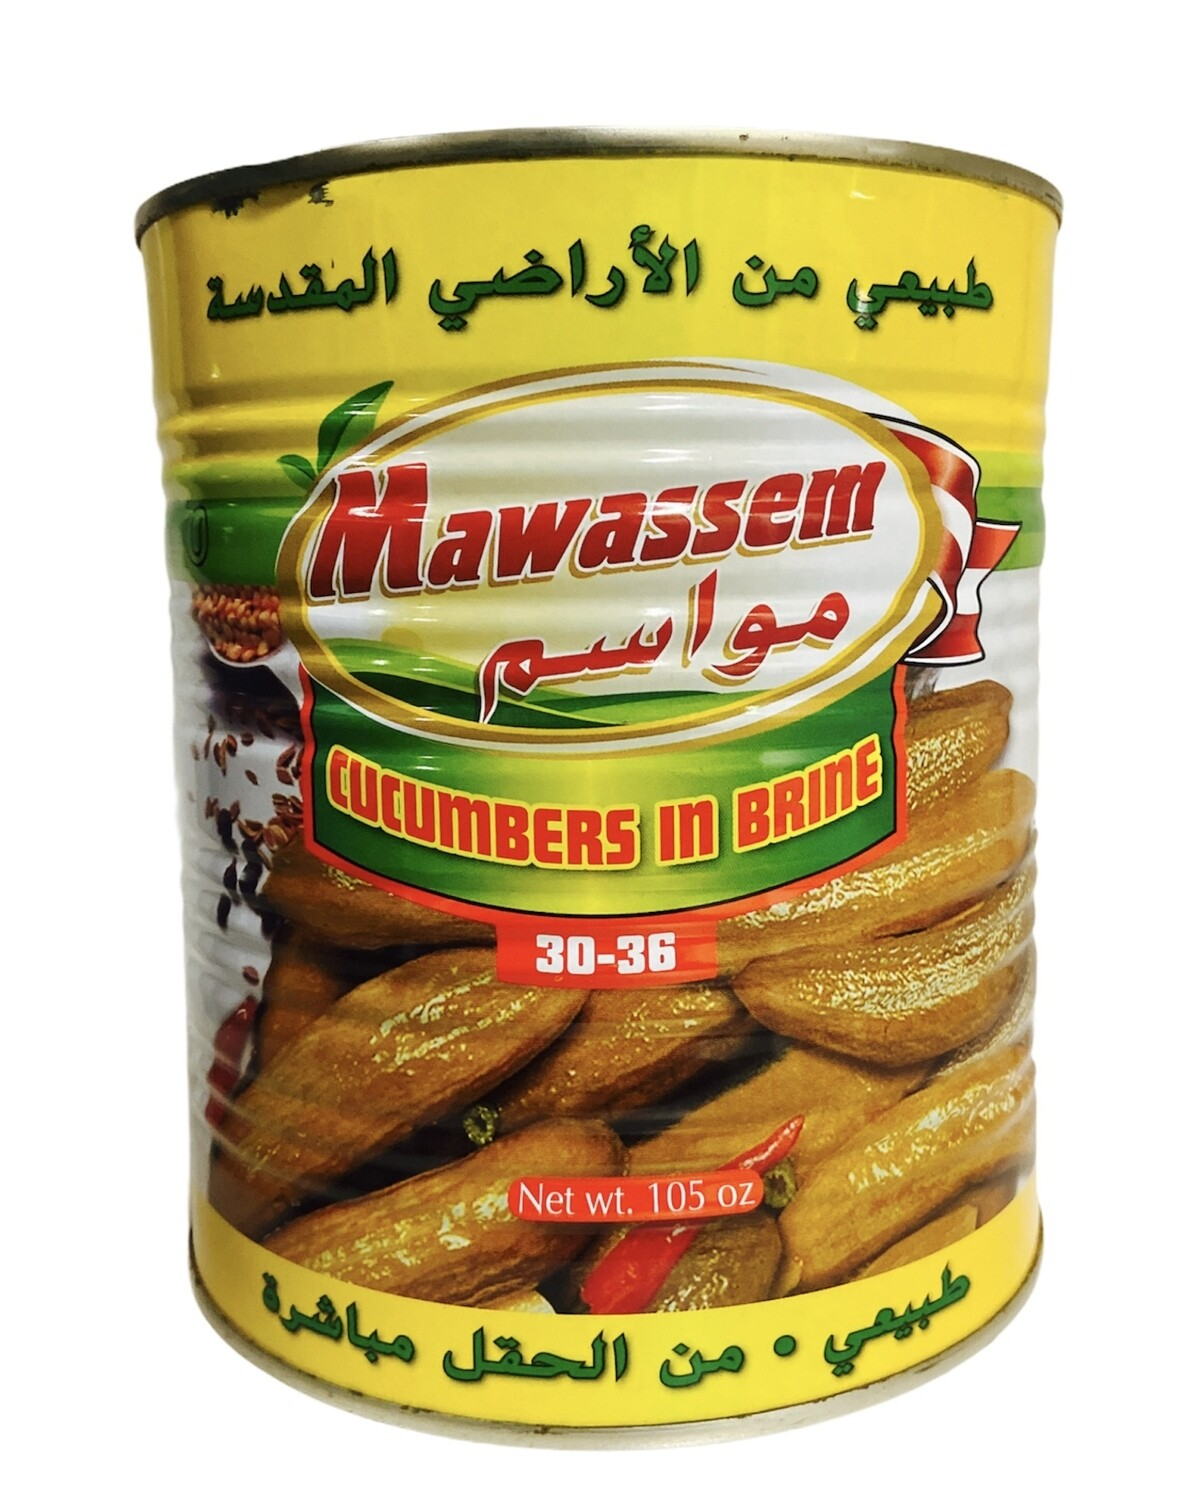 Mawassem Pickled Cucumbers Count 30/36 6x6lb